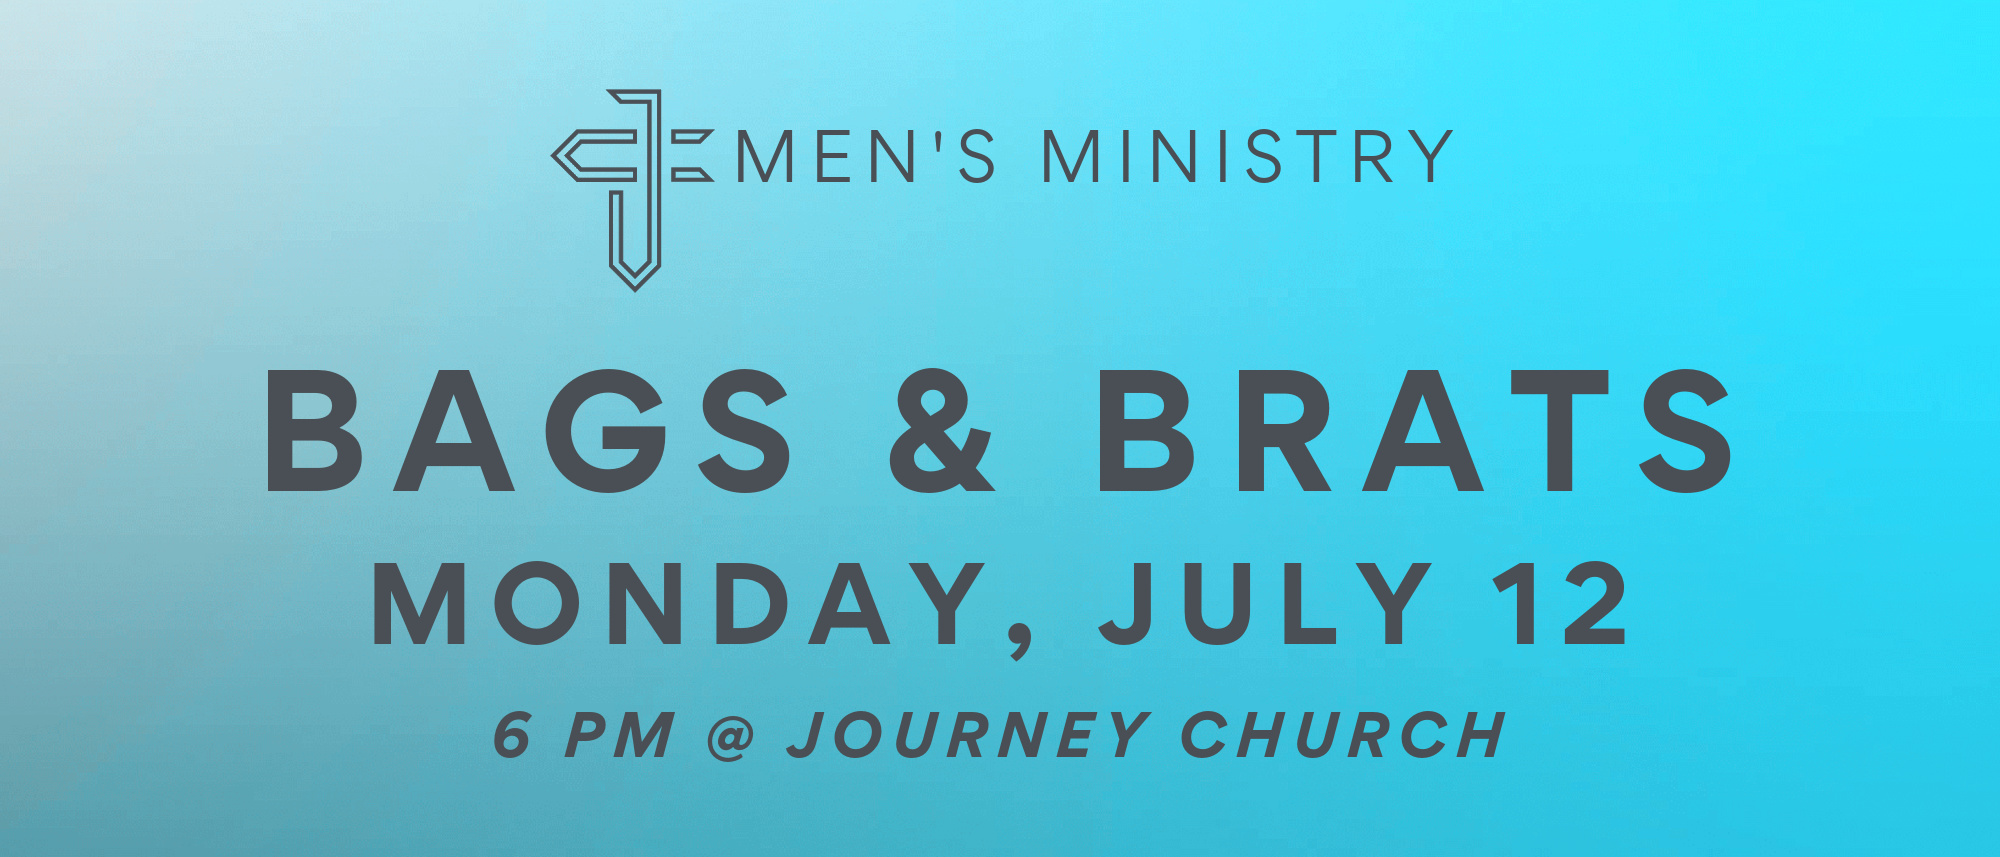 Bags and Brats at Journey Church on July 12